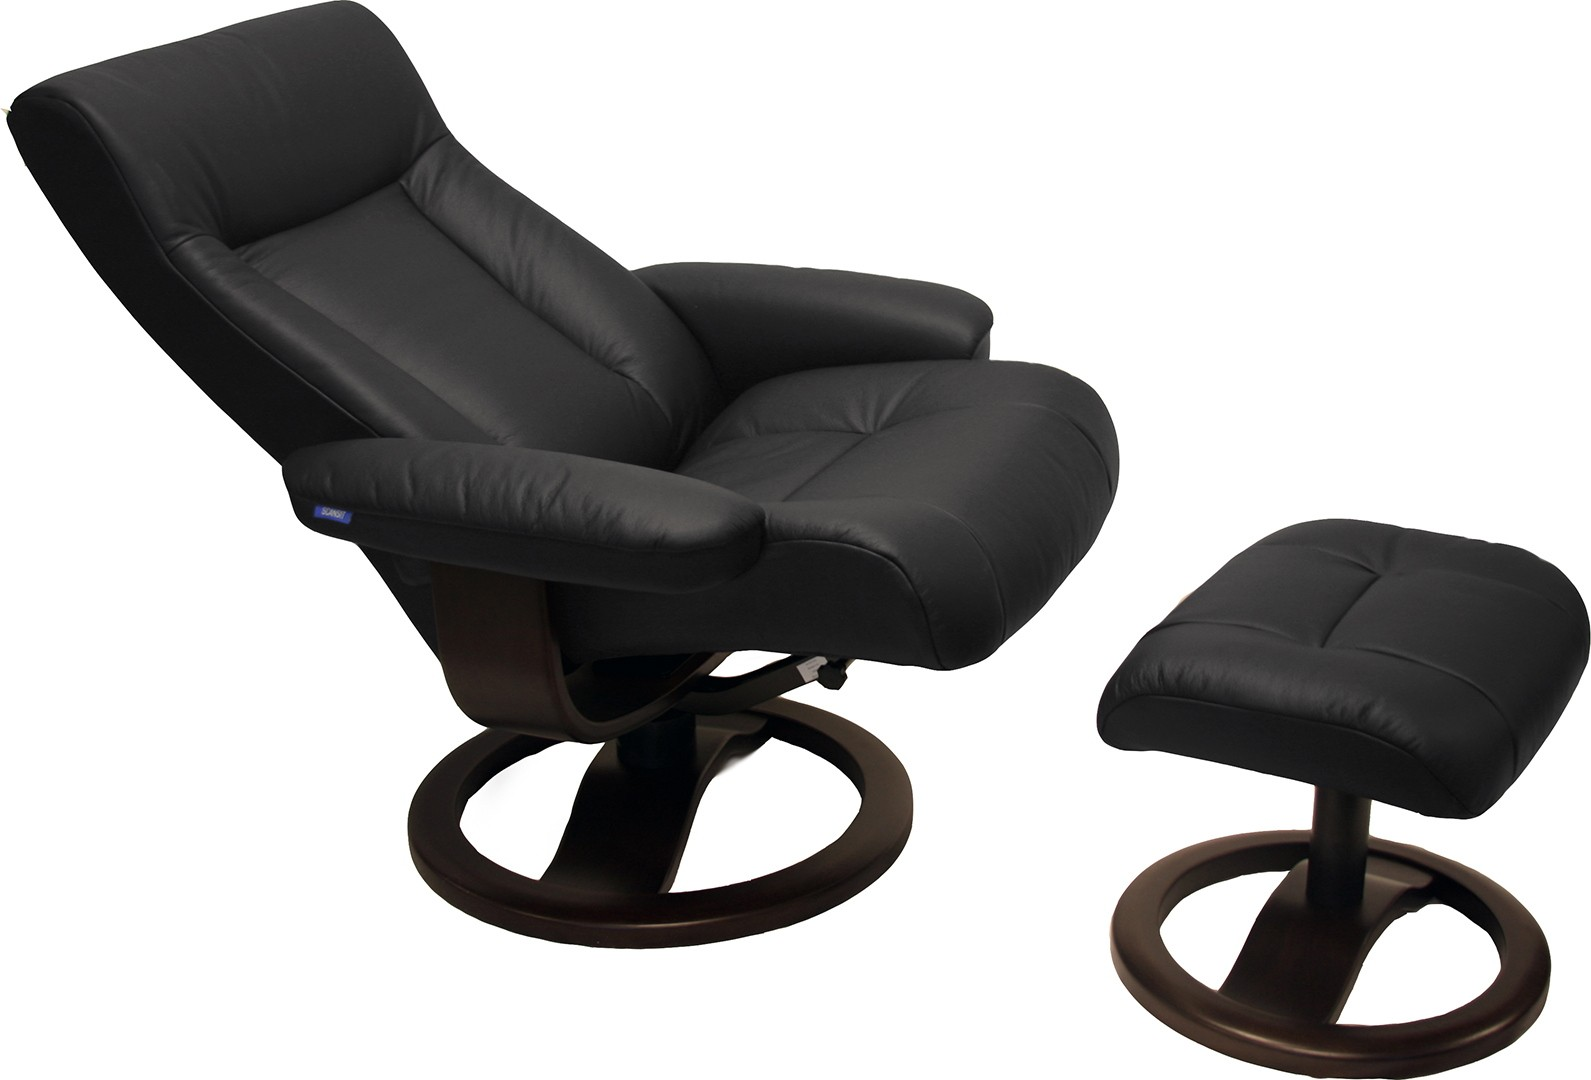 ergonomic chair norway computer chairs cheap hjellegjerde scansit 110 large